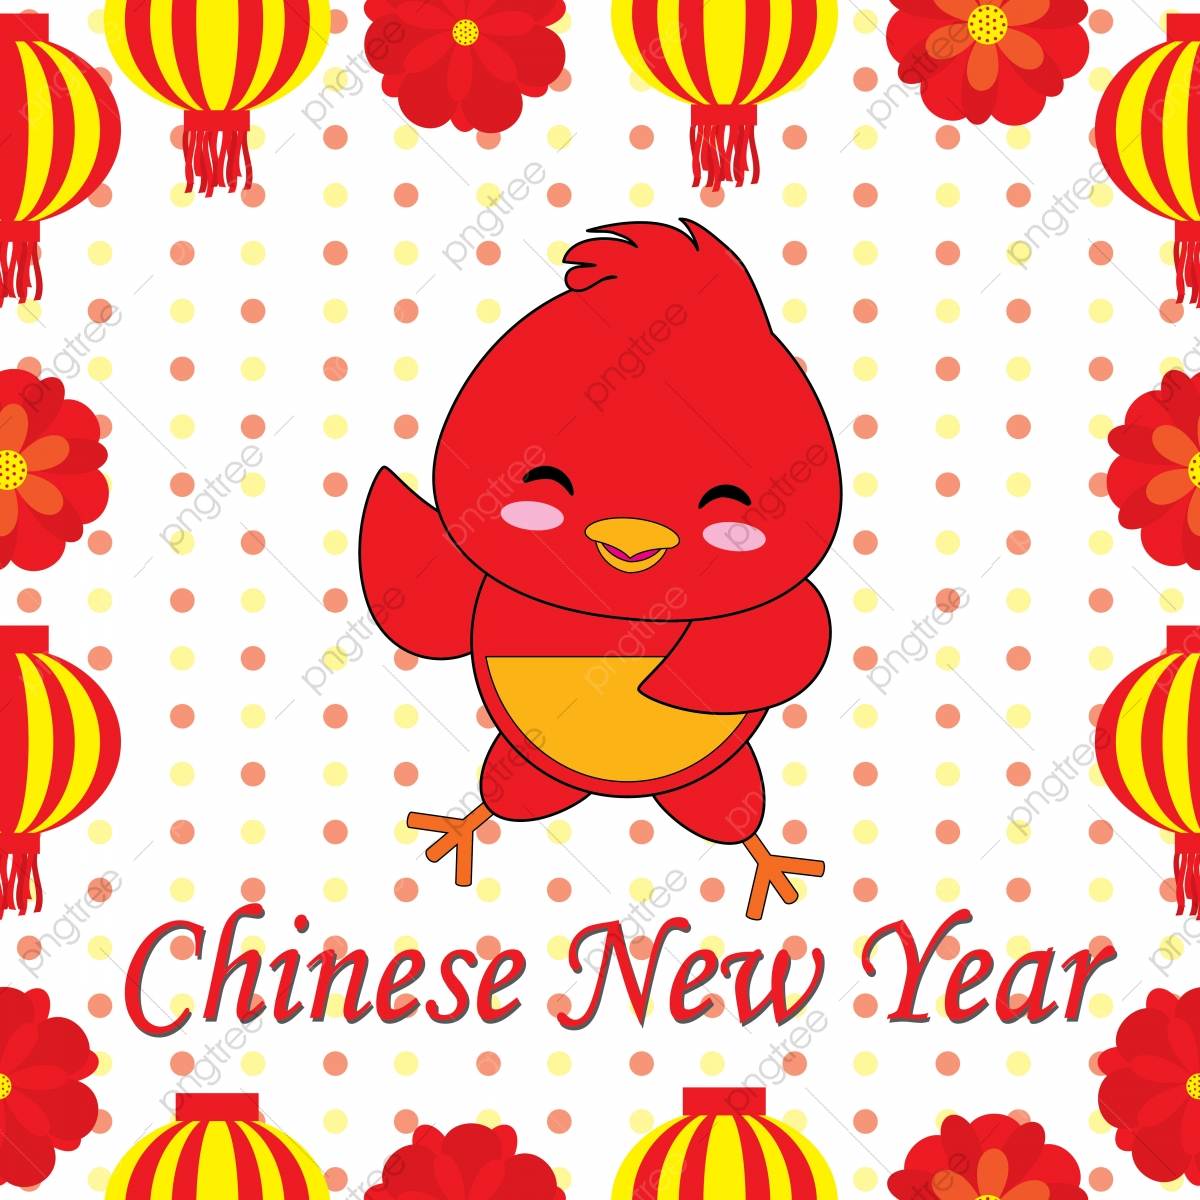 Cute Rooster On Polka Dot Background Suitable For Chinese New Year Postcard Greeting Card And Wallpaper Year Png And Vector With Transparent Background For Free Download